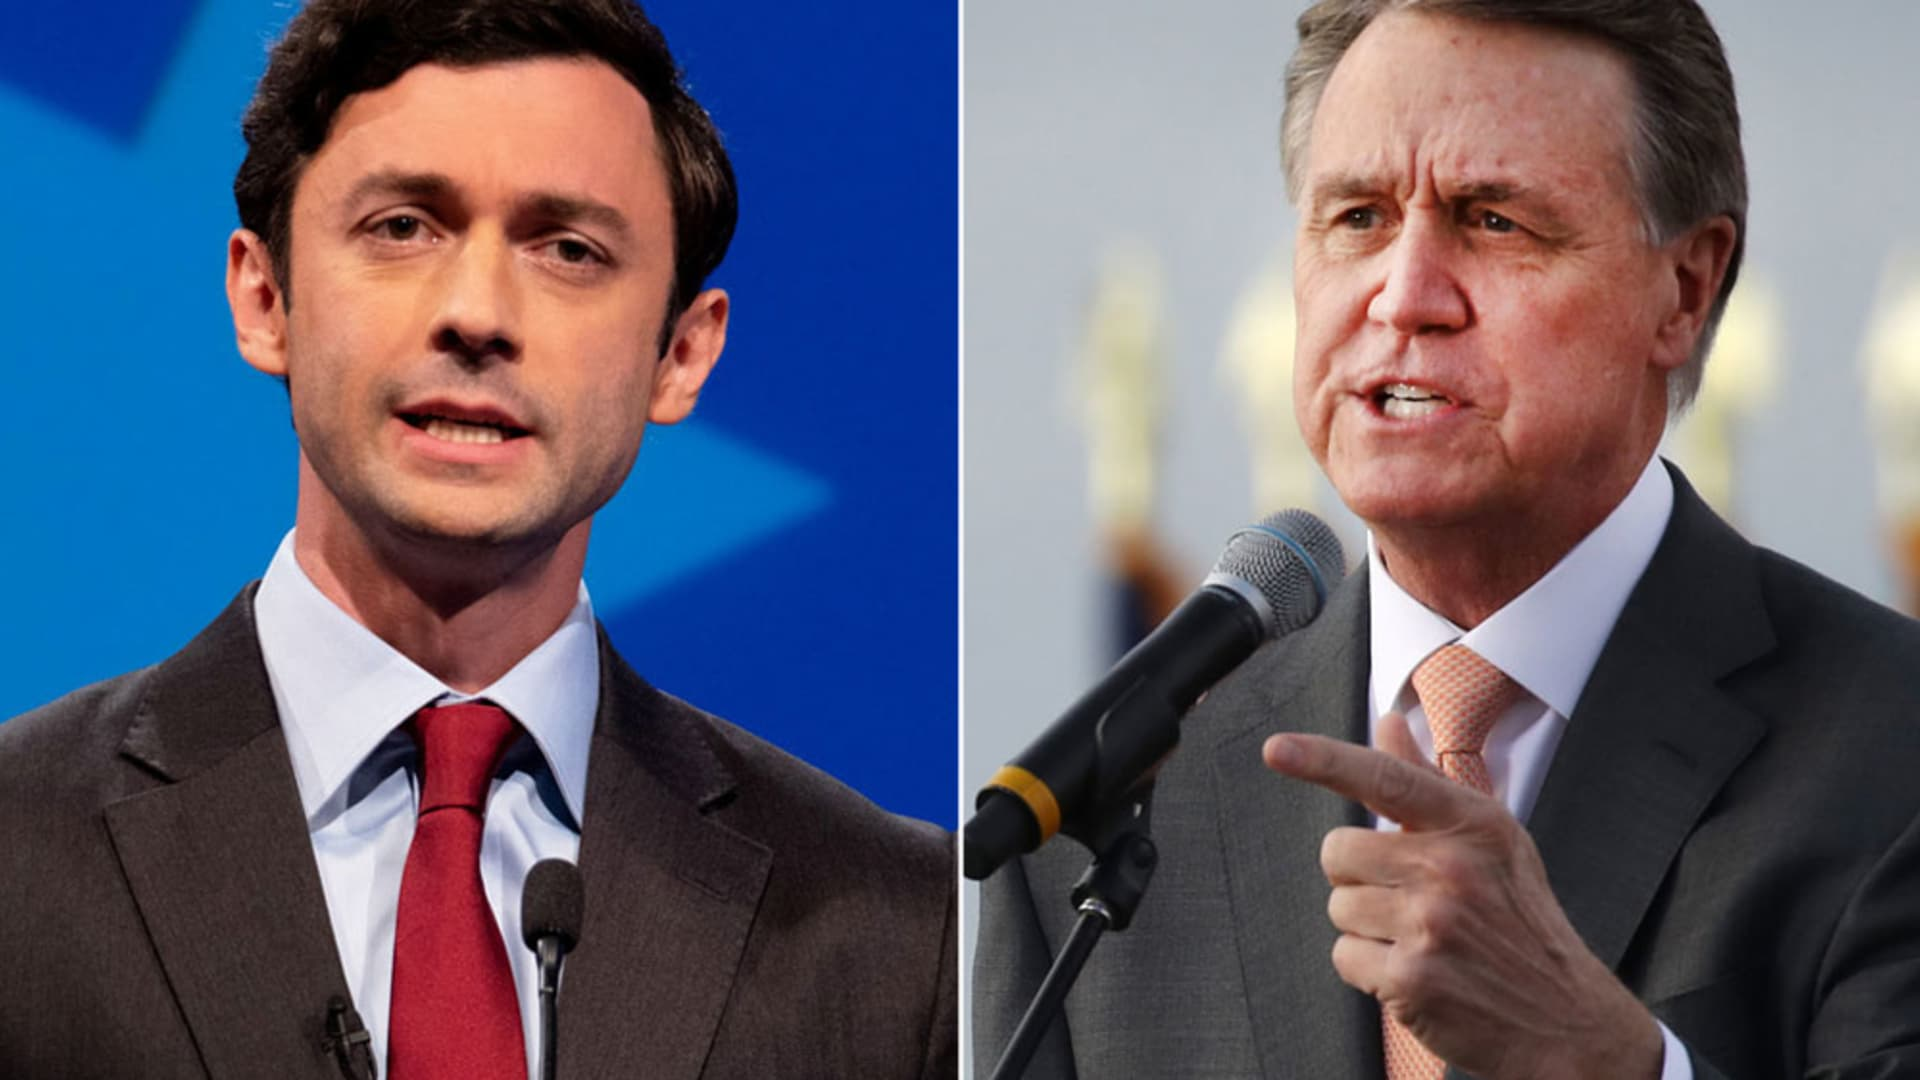 Jon Ossoff and David Perdue, candidates for Senate from Georgia.